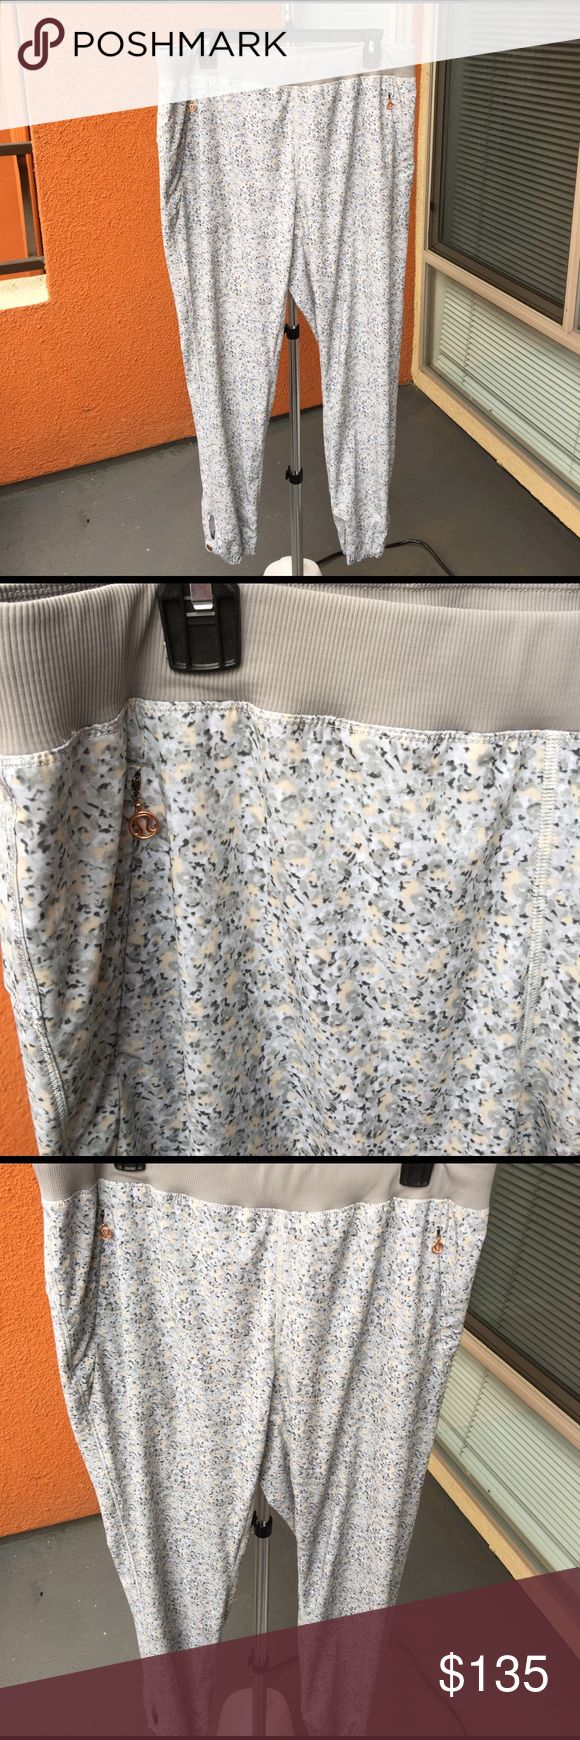 🆕floral Lulu pants ⭐NWOT⭐SMOKE/PET FREE HOME⭐ super lightweight and soft. Stretch waist. Snaps at ankle. Never worn. Style and print no longer made. Comes with a lulu bag! lululemon athletica Pants Track Pants & Joggers